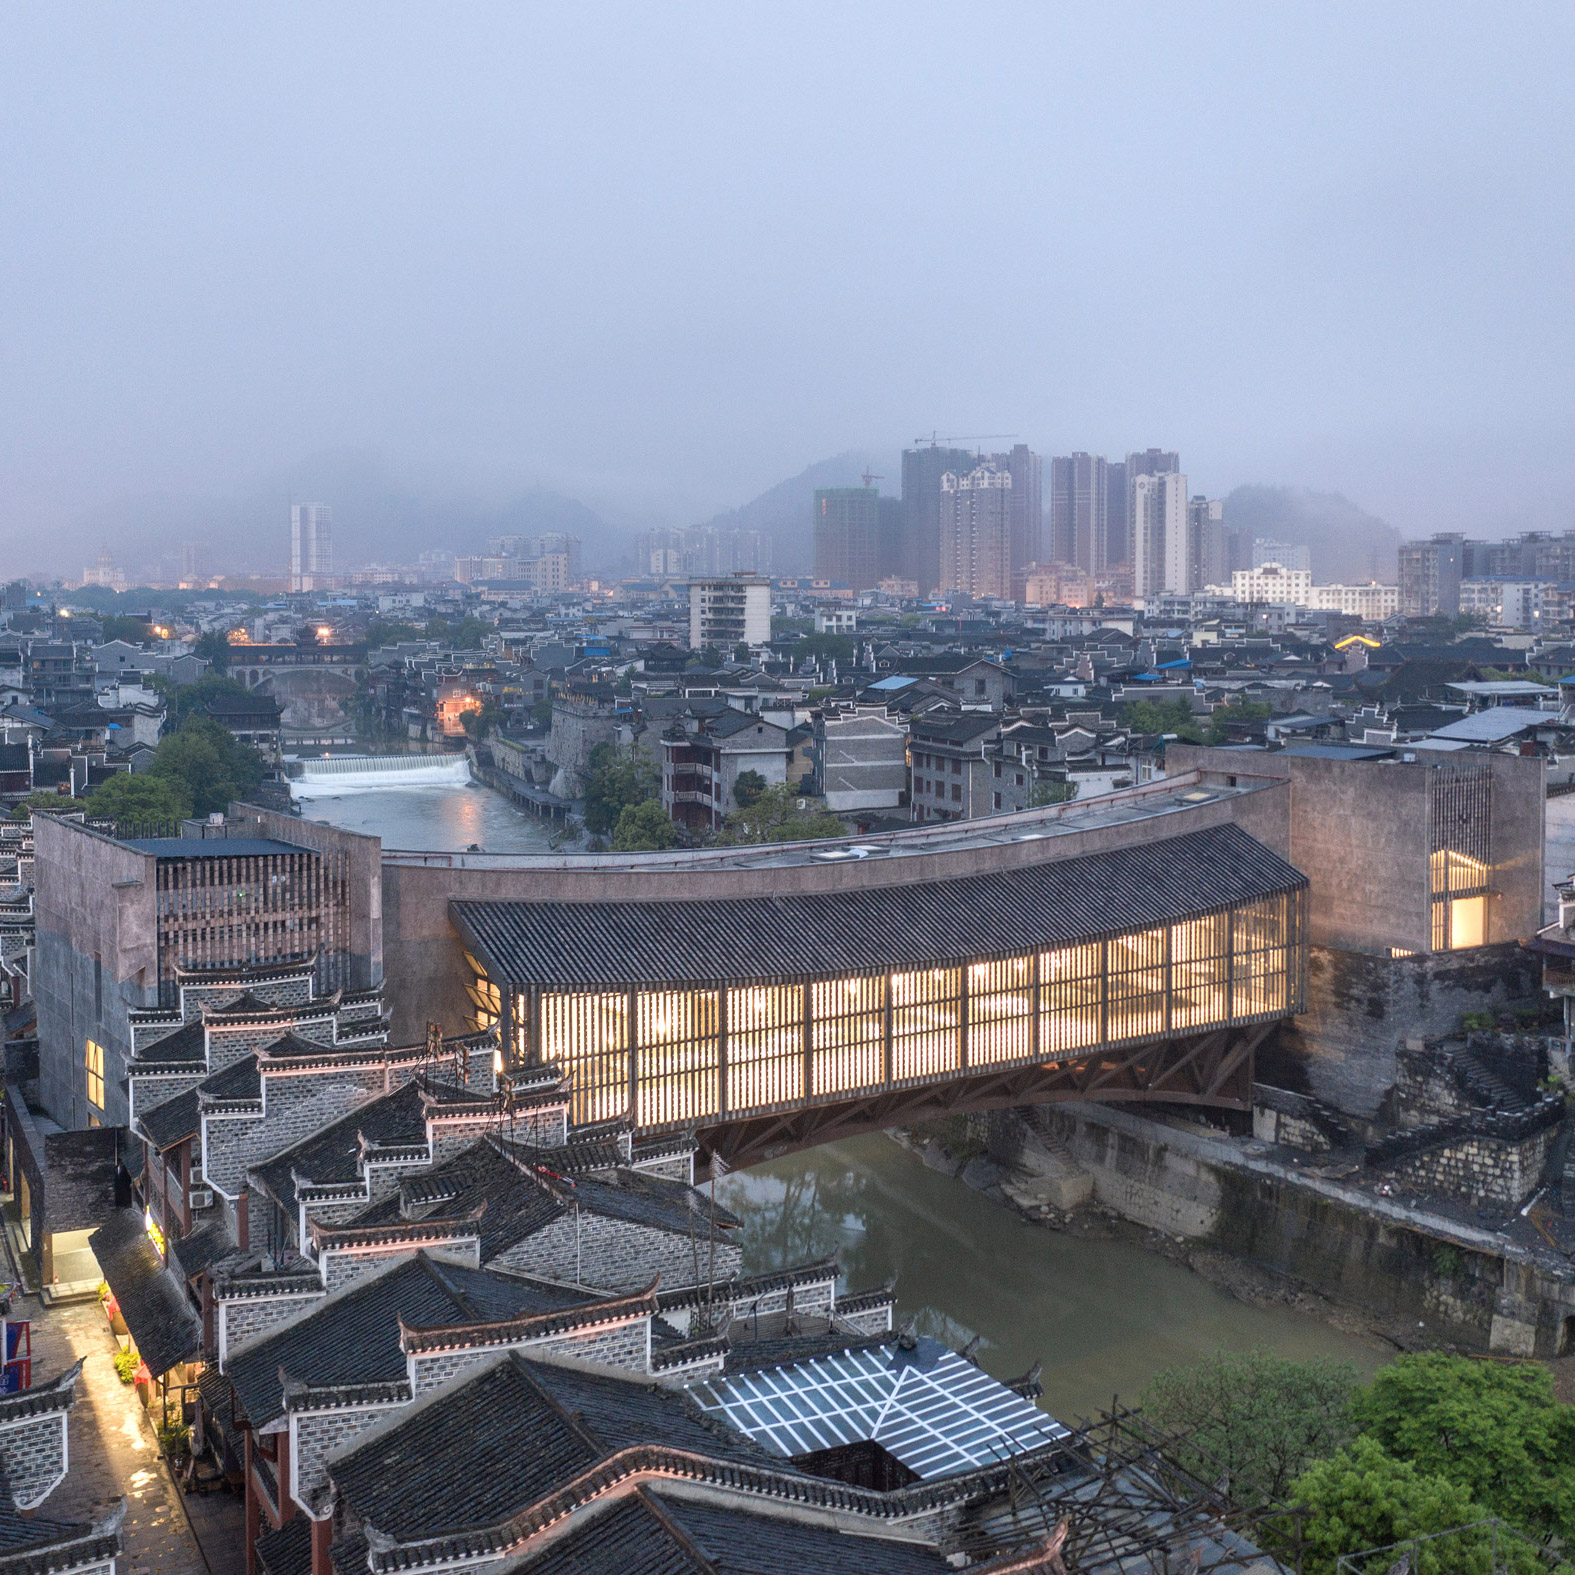 Dezeen's top 10 Chinese architecture projects of 2019: Jishou Art Museum, Jishou, by Atelier FCJZ